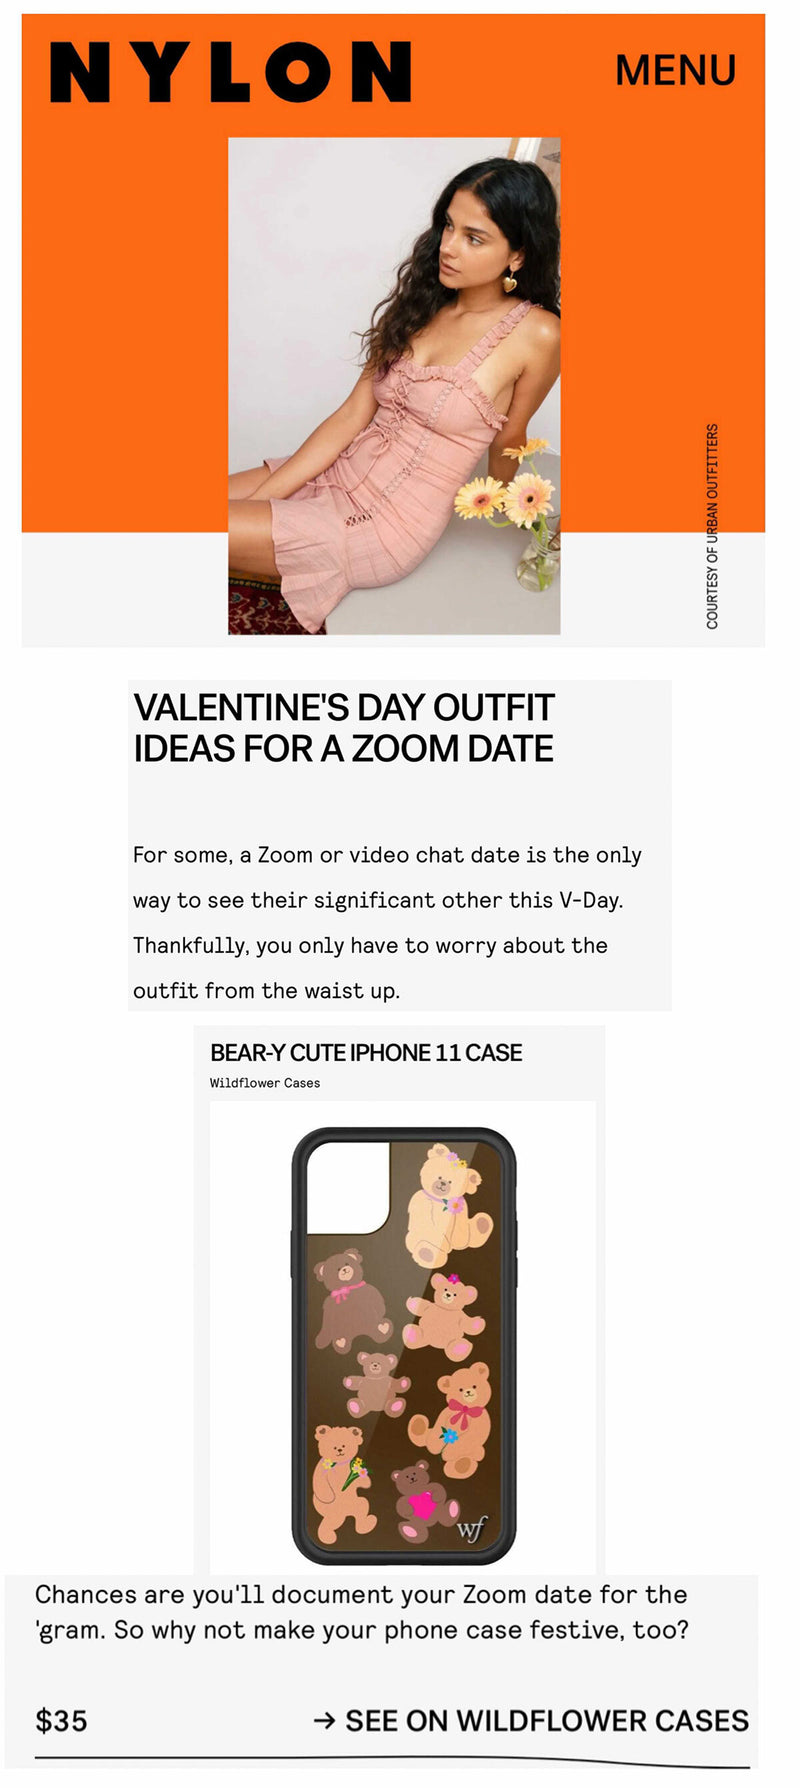 17 OUTFIT IDEAS FOR YOUR VALENTINE'S DAY PLANS, FROM A CHILL NIGHT IN TO ZOOM DATES